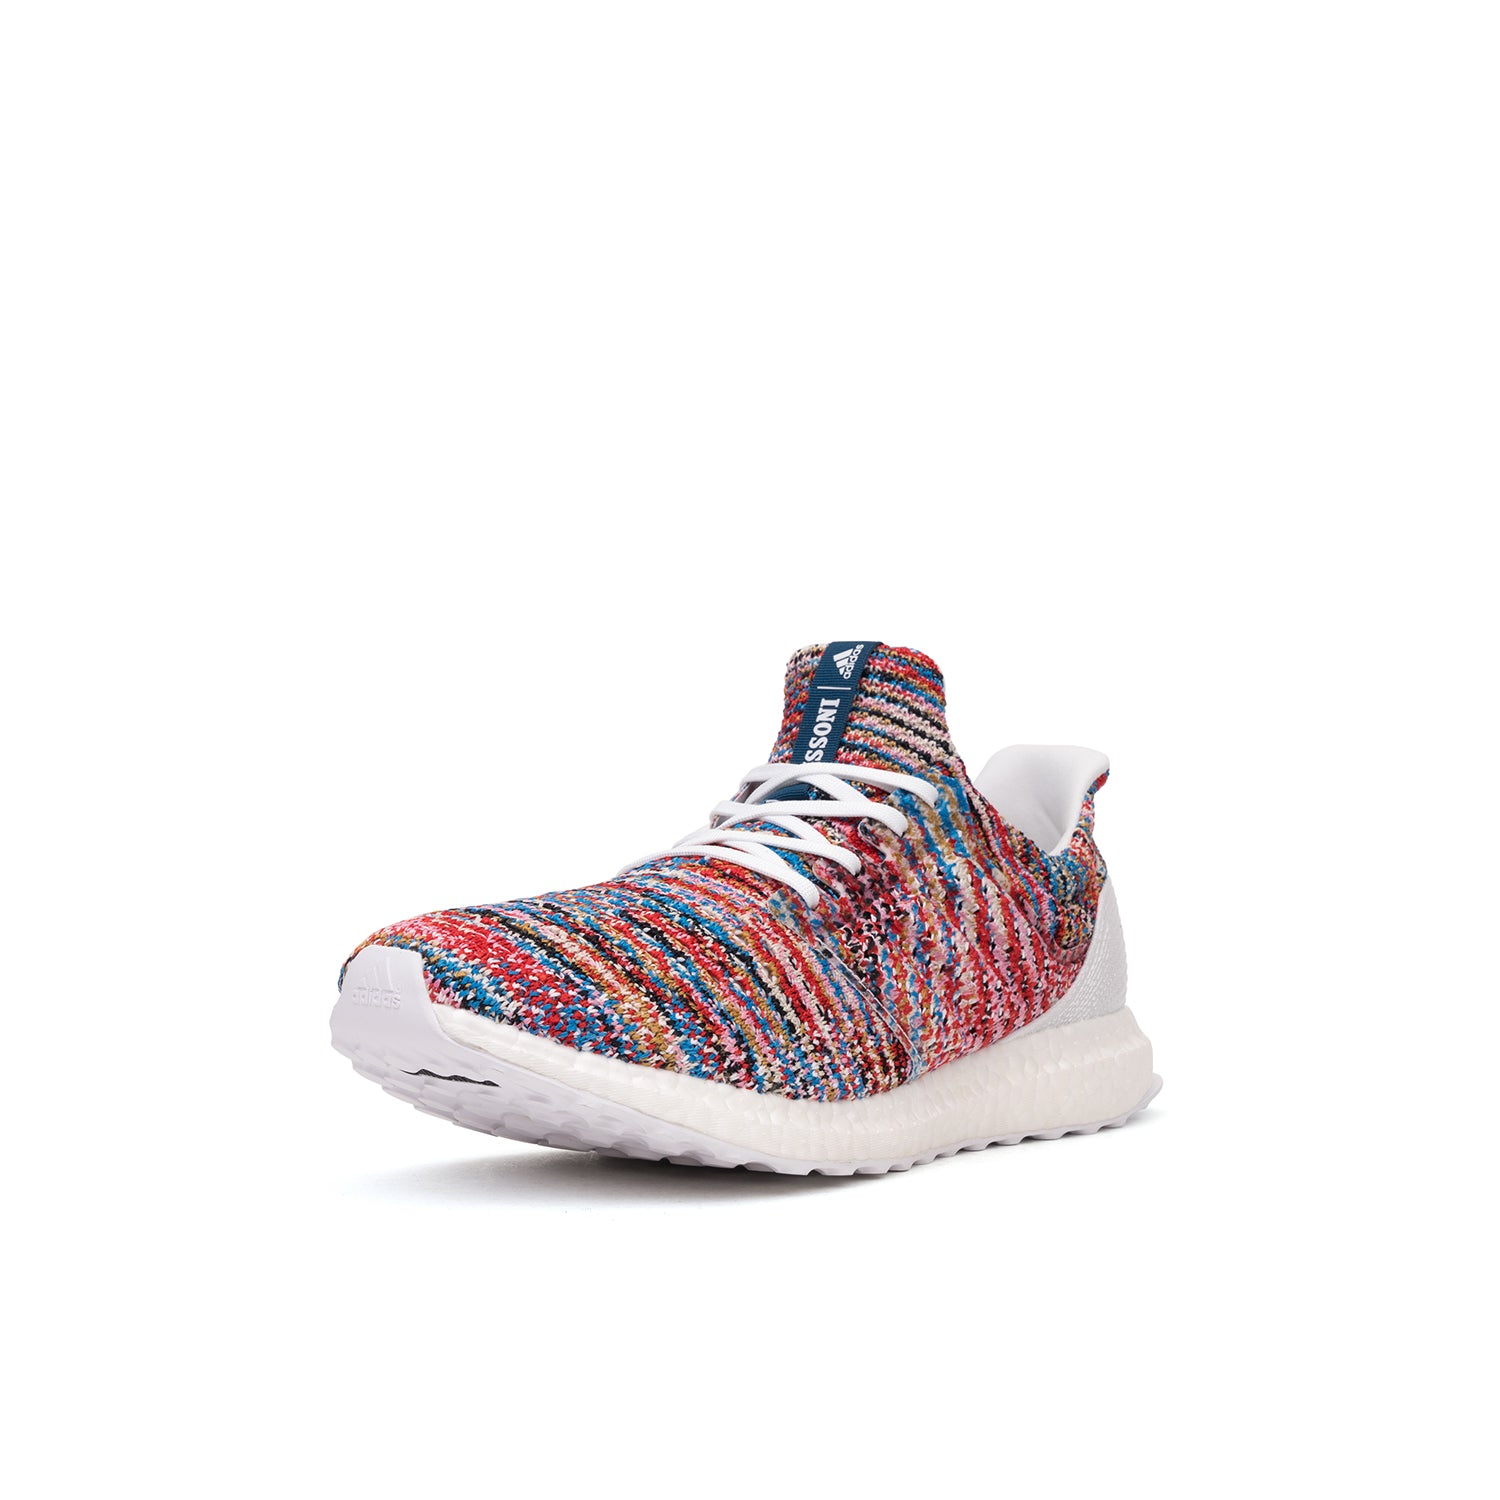 703bc6add96 adidas x Missoni Ultra Boost Clima White   Cyan - Active Red – Concrete